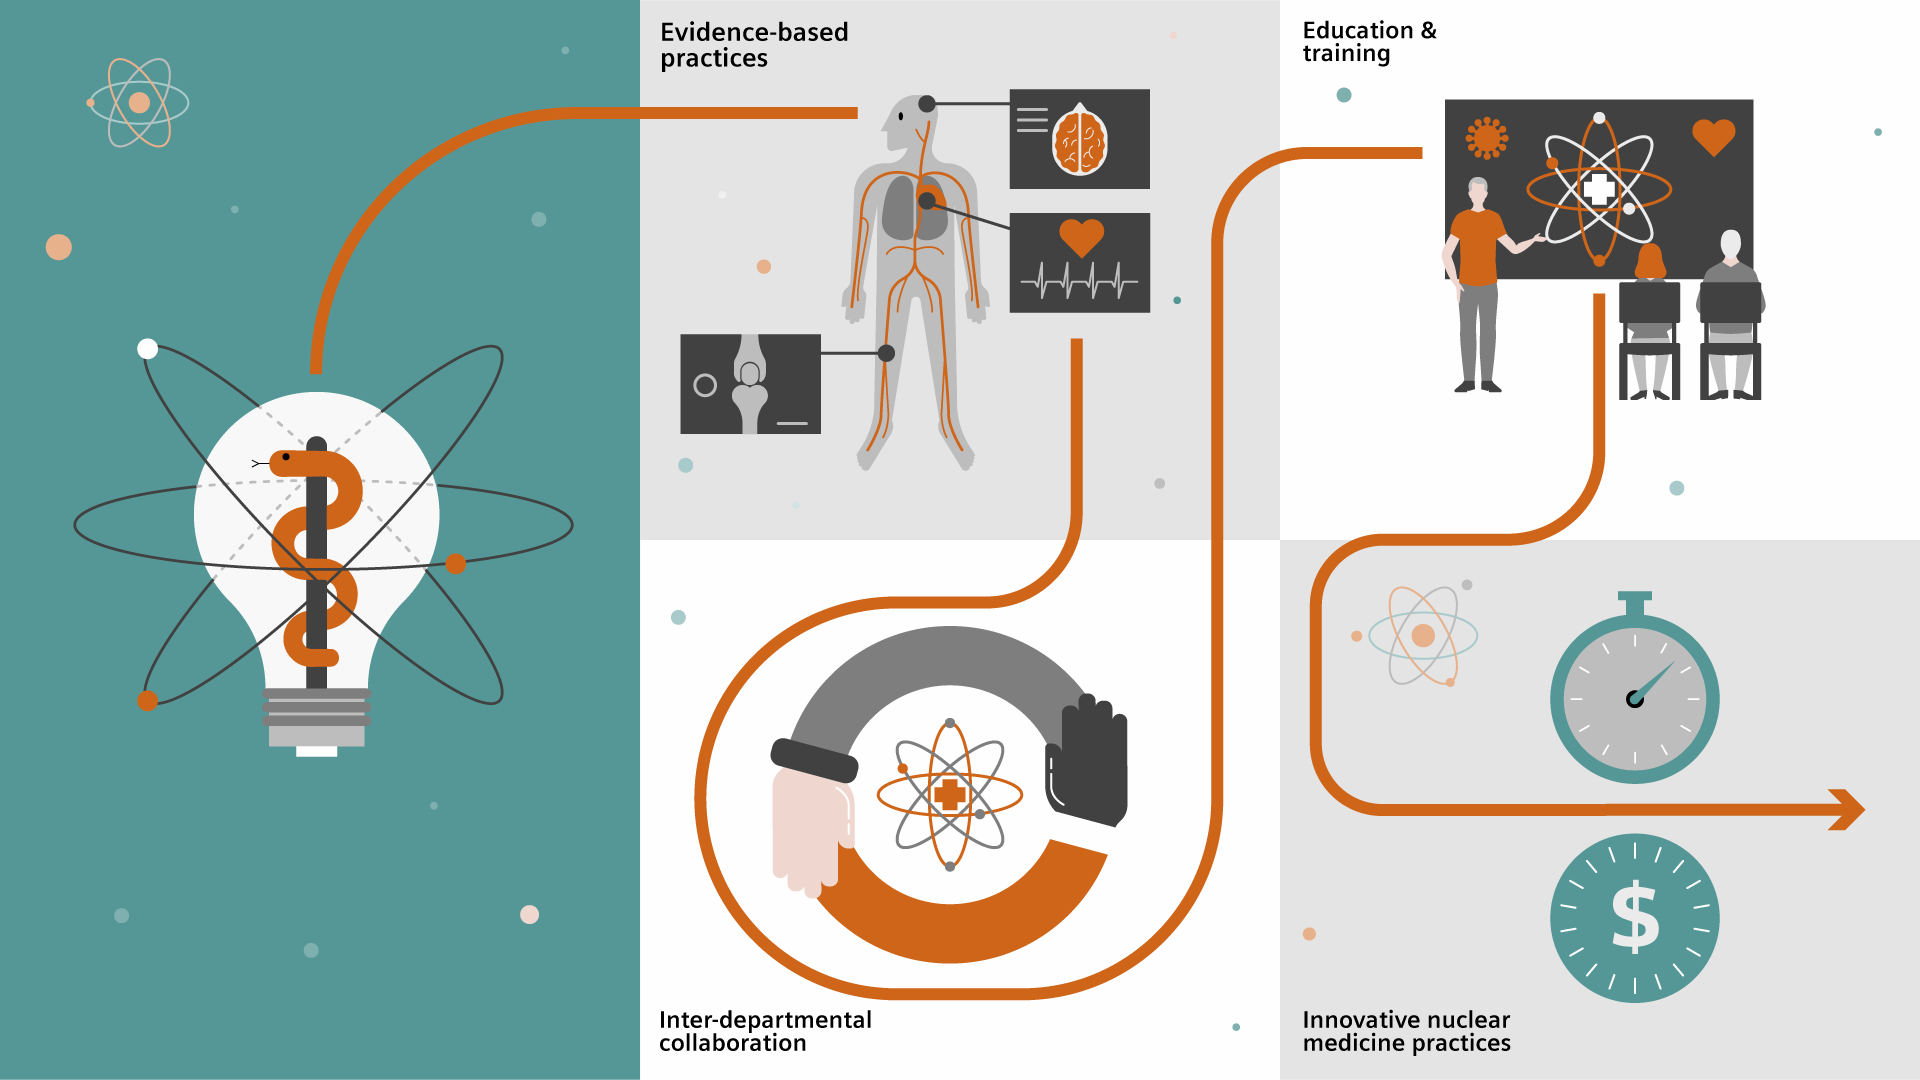 Expanding the role of nuclear medicine takes evidence, based practices, inter-departmental collaboration, education and training, and innovative nuclear medicine practices.